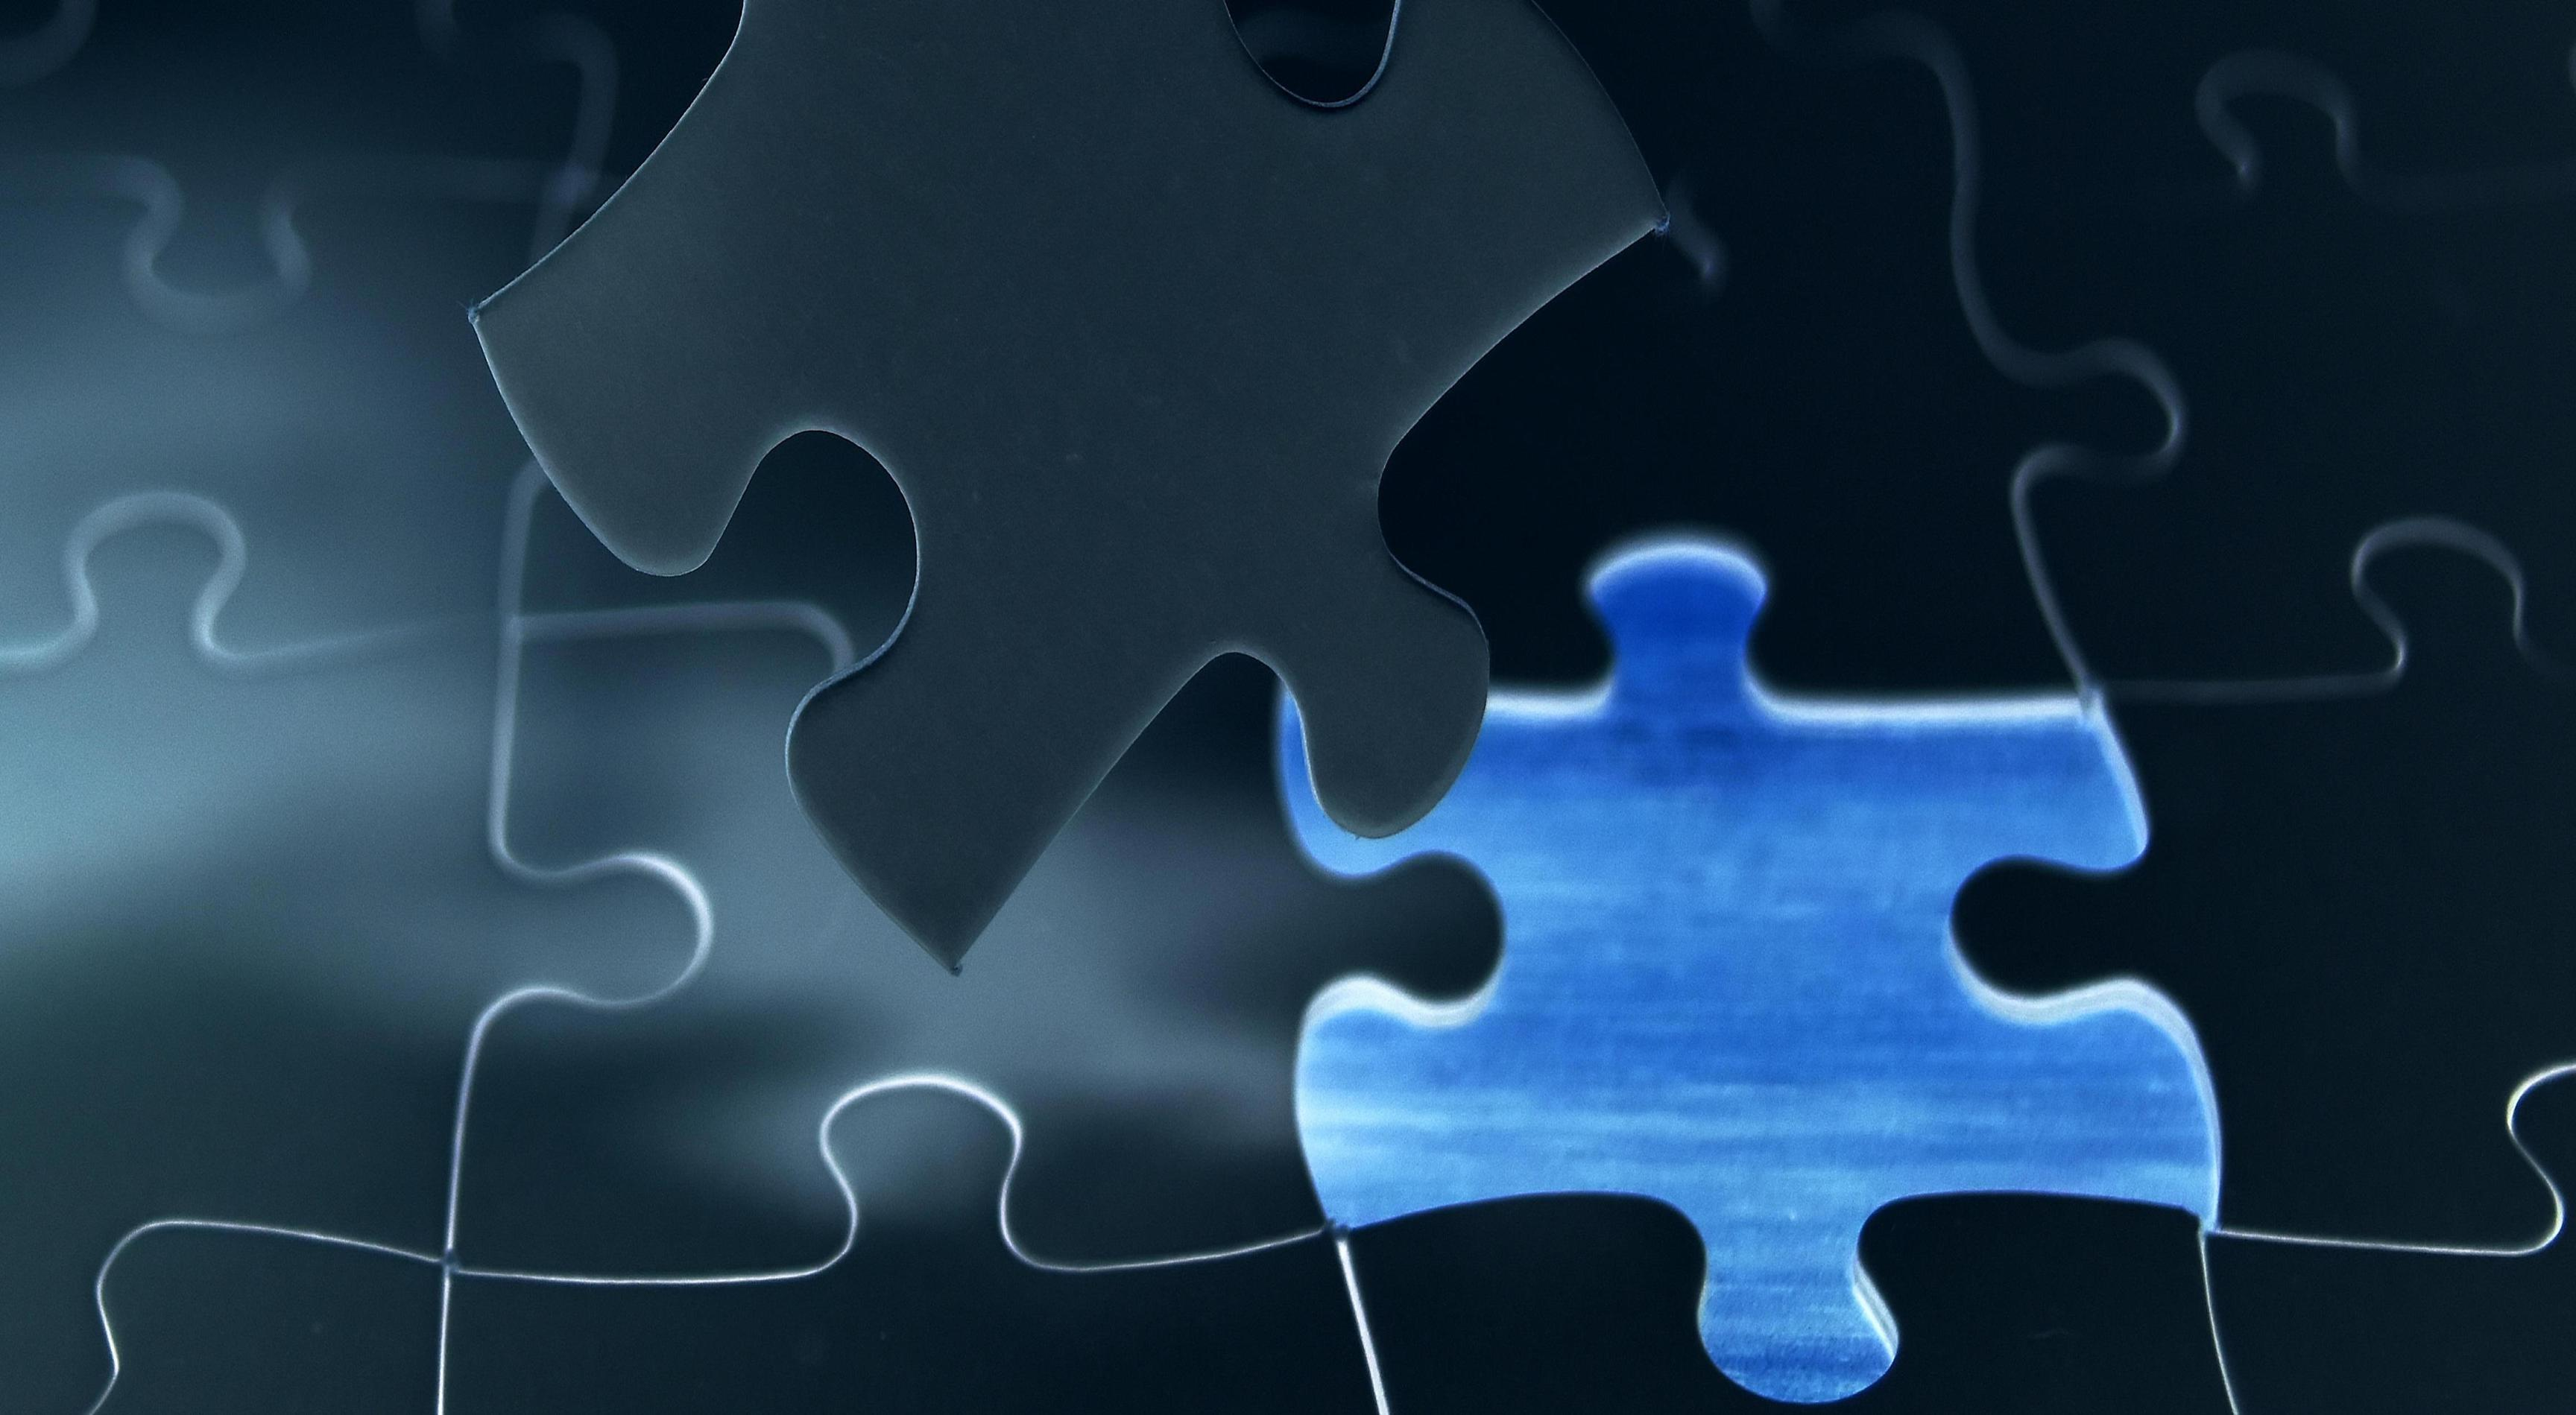 A piece being inserted into a jigsaw puzzle